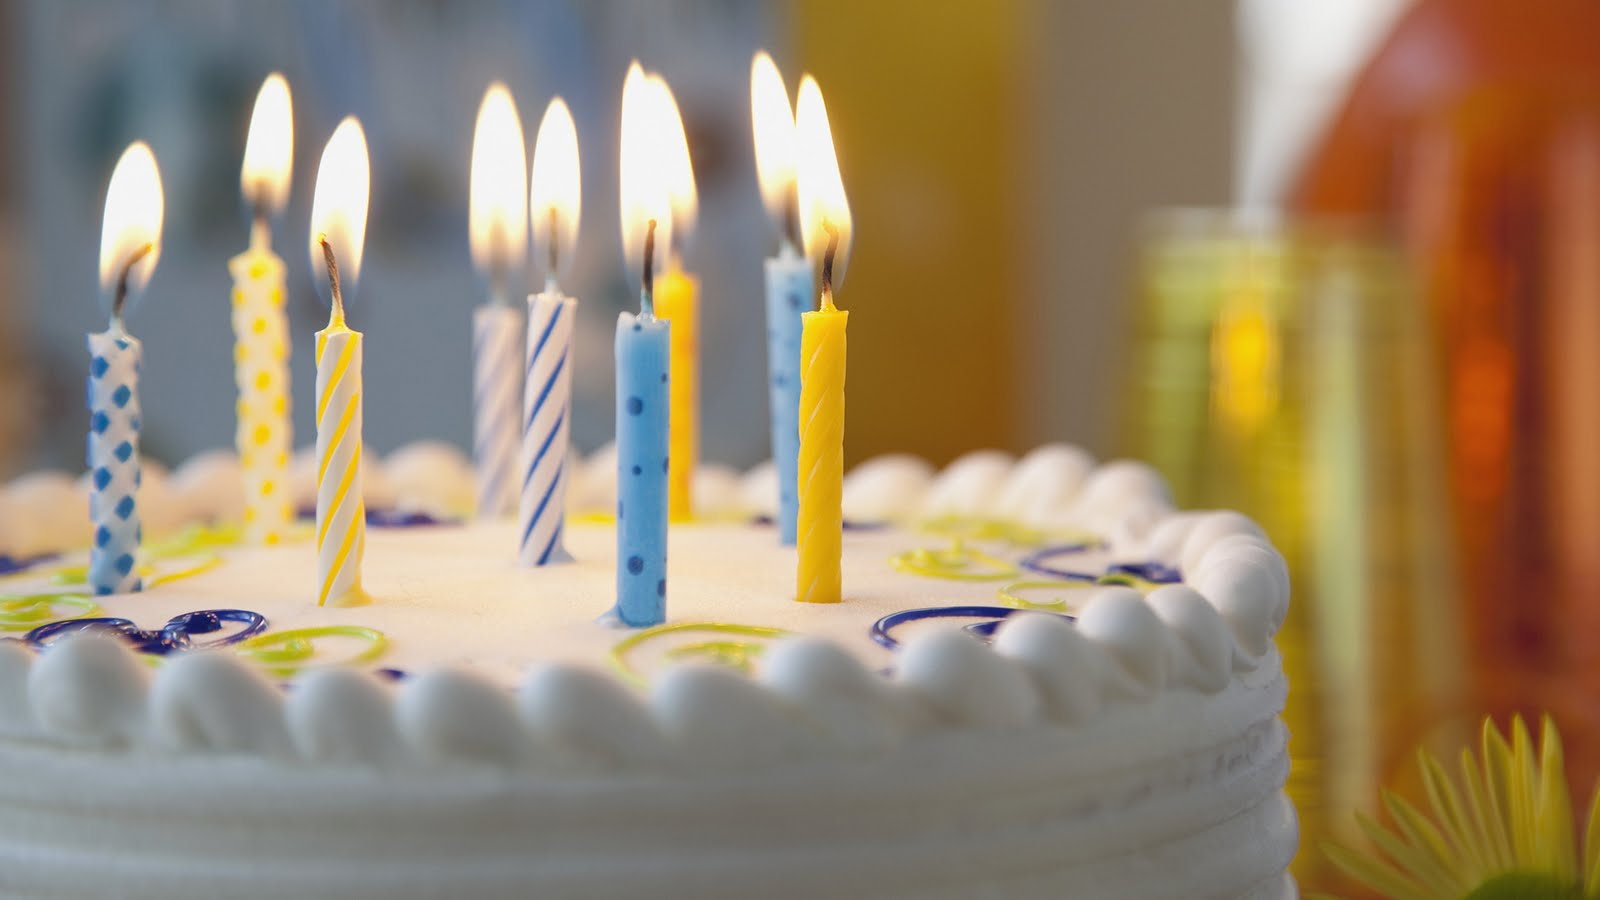 http://3.bp.blogspot.com/-W1zk6TGR1C0/TiHLV0FybvI/AAAAAAAAA0g/0J0bFketA04/s1600/happy-birthday-to-you-1080p-hd-wallpaper.jpg